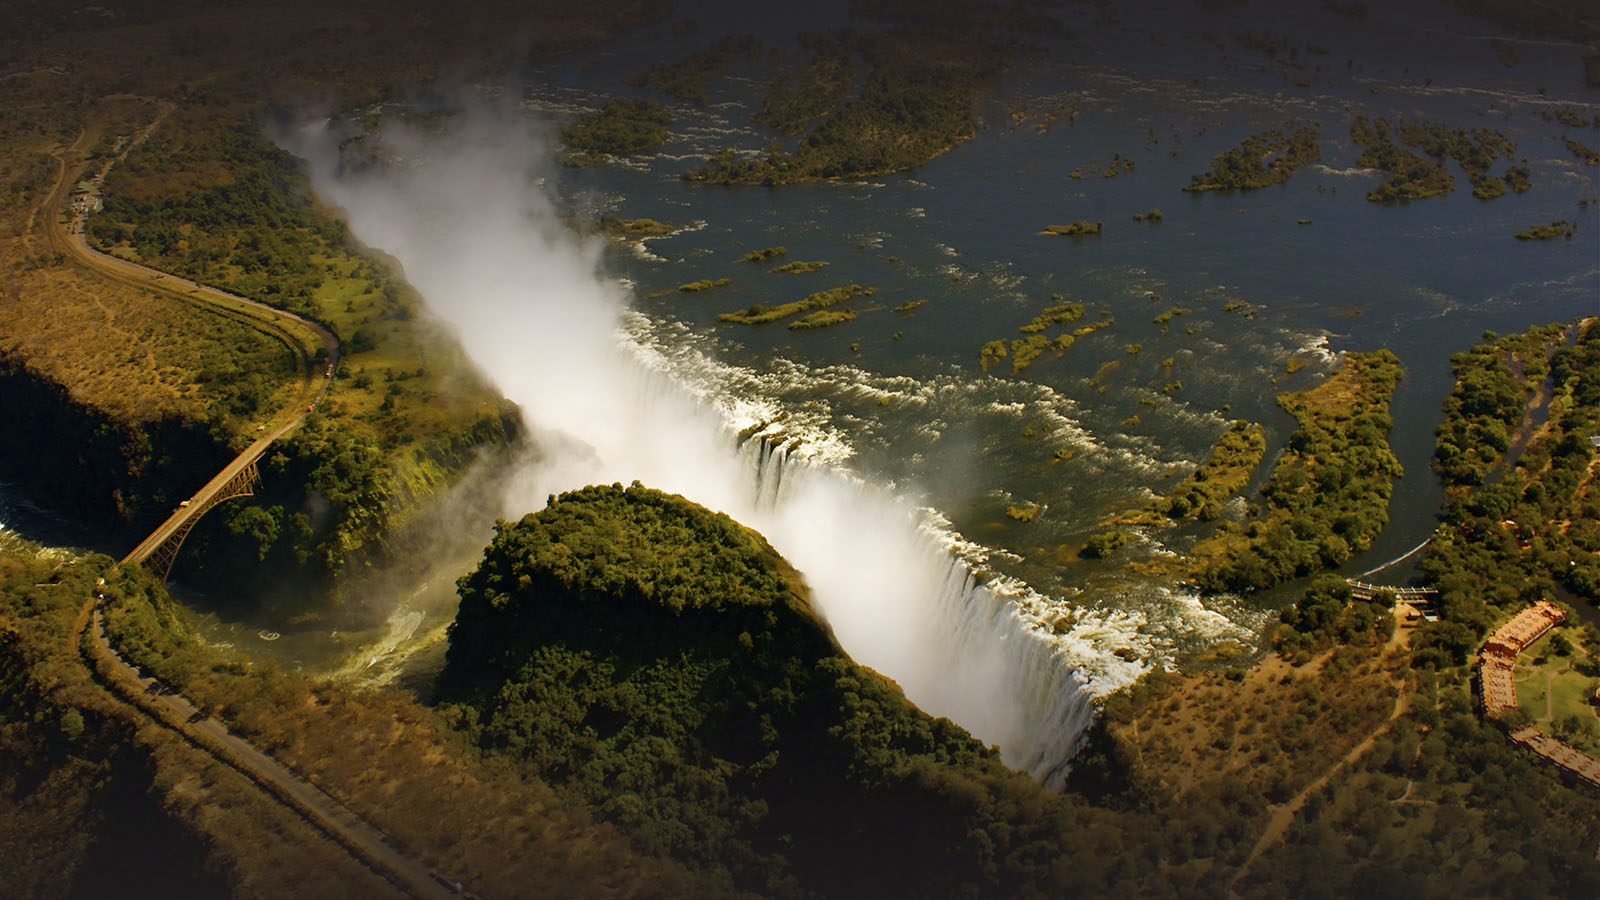 little gorges tented lodge imvelo-victoria-falls-zimbabwe-accommodation-falls